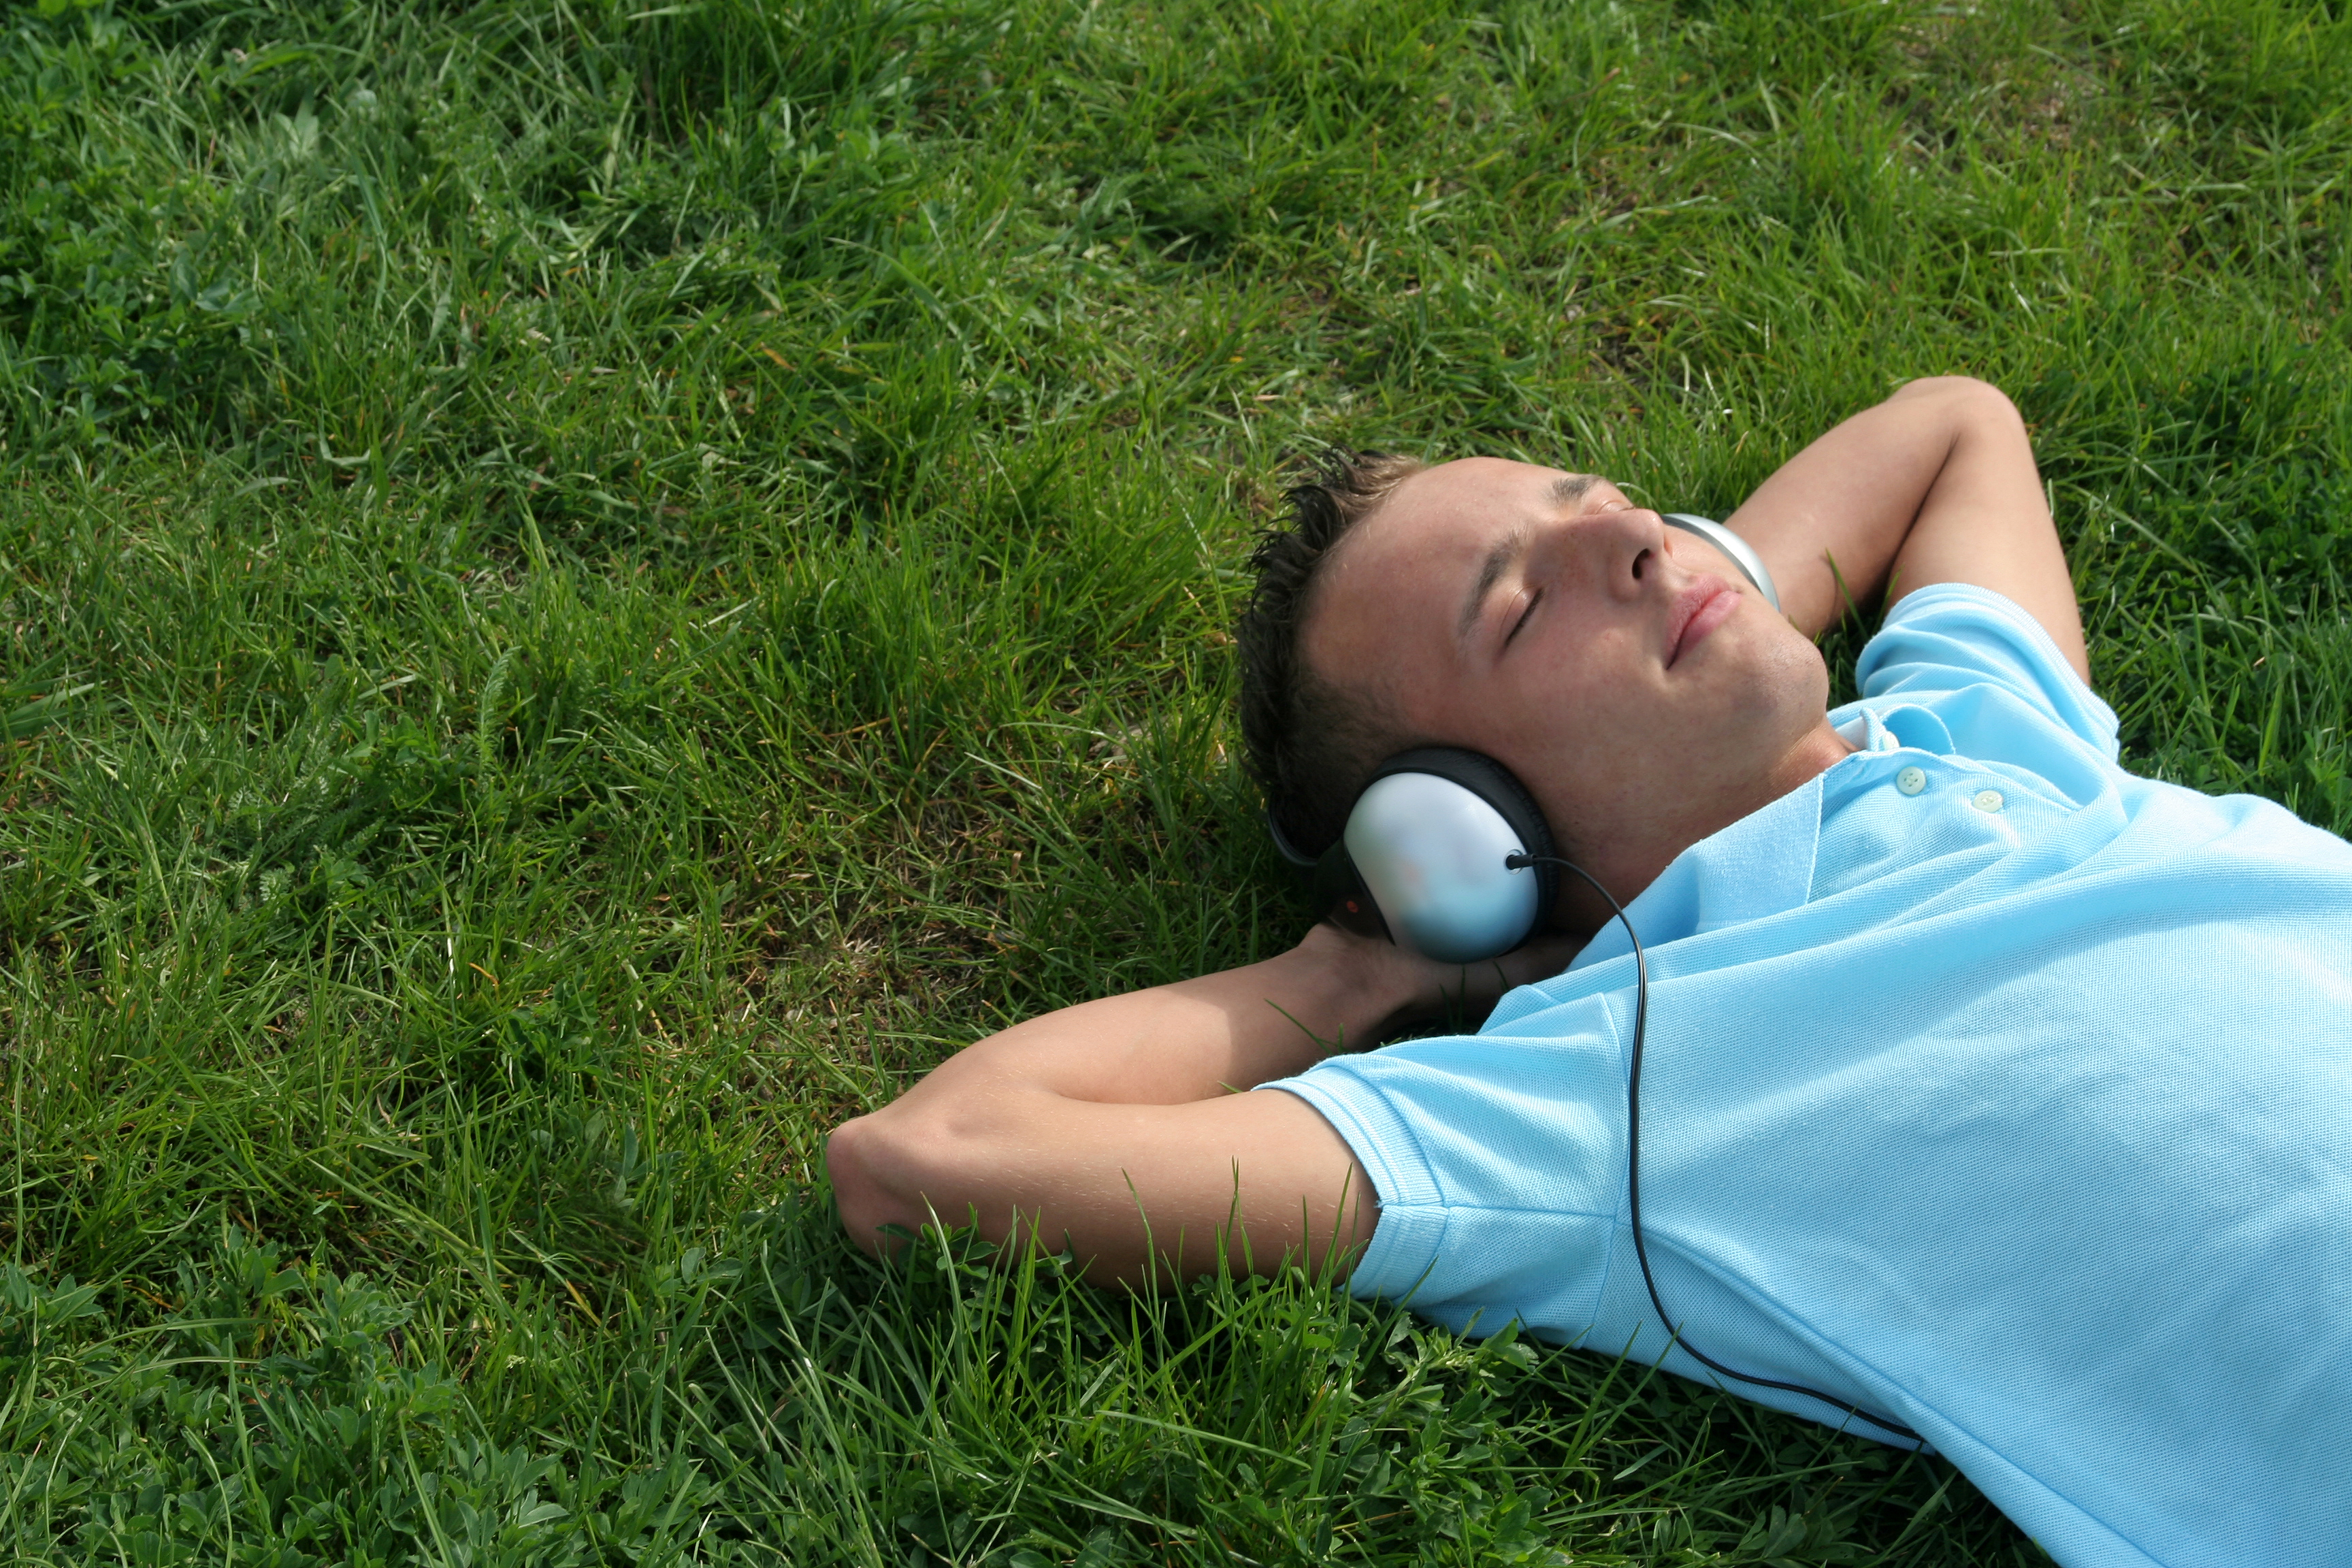 bigstockphoto_Young_Man_Listening_To_Music_556416